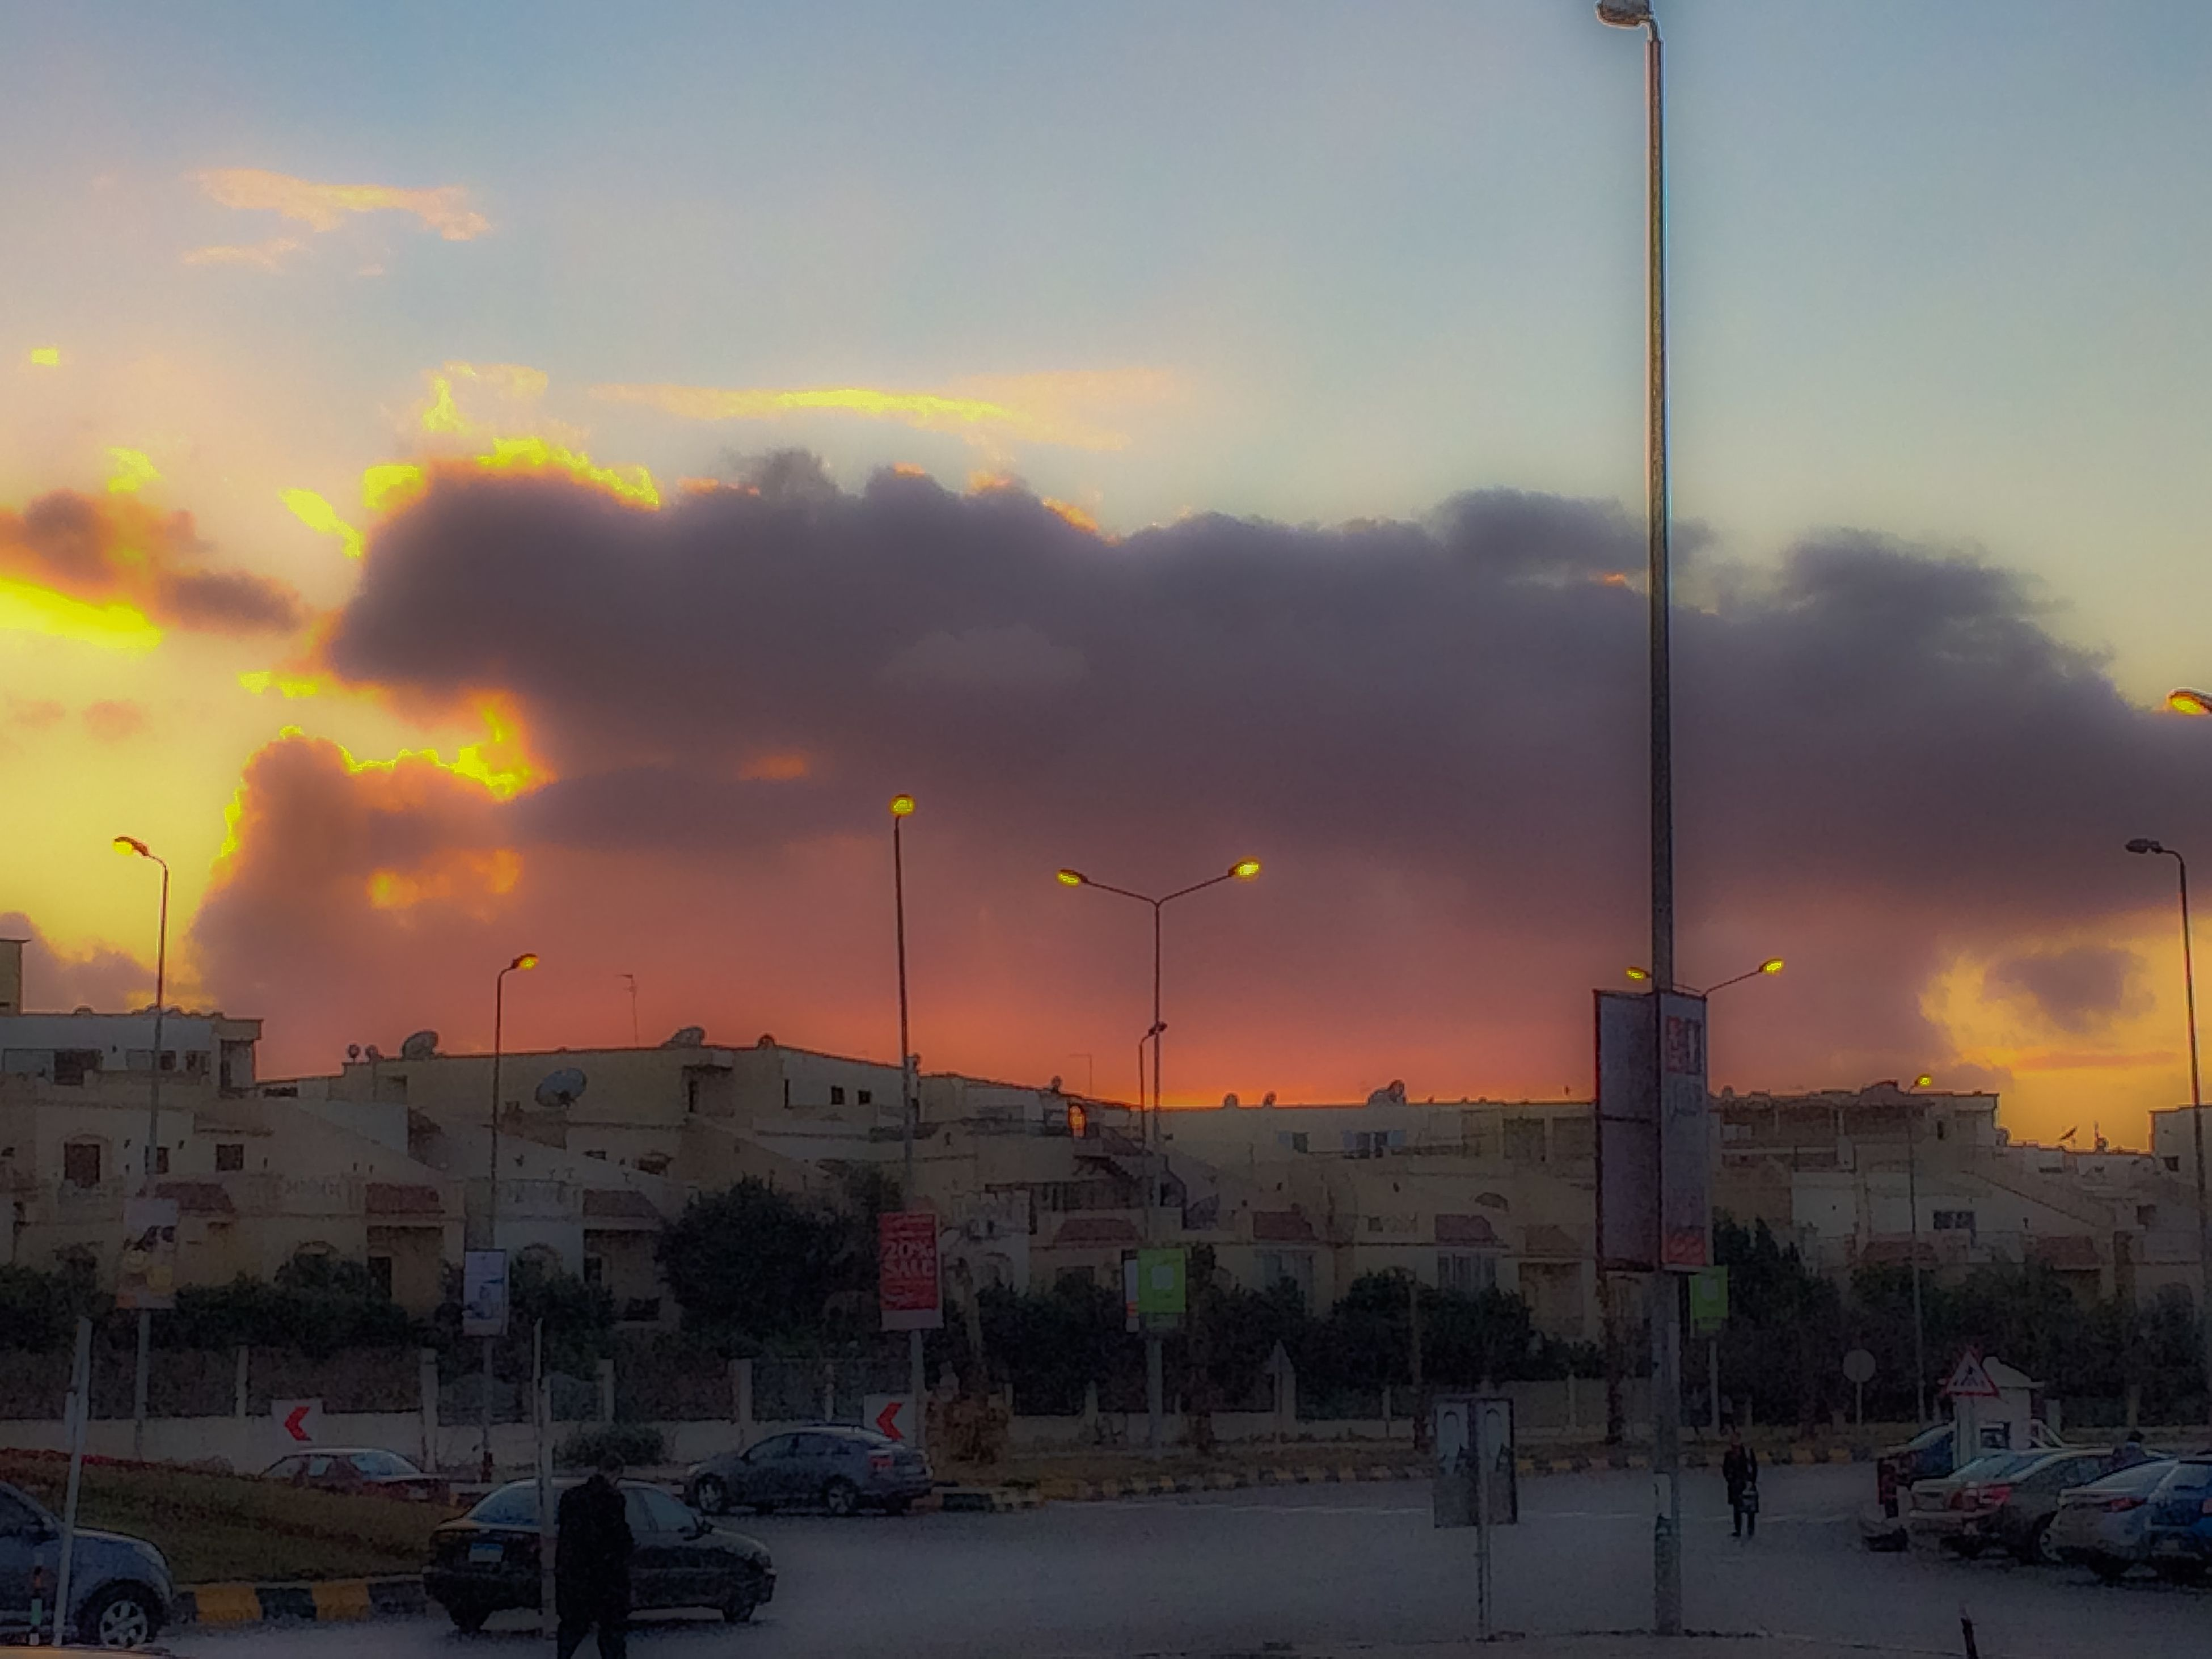 sunset, transportation, sky, mode of transport, cloud - sky, street light, car, orange color, weather, land vehicle, built structure, cloudy, building exterior, city, architecture, street, outdoors, harbor, in a row, nature